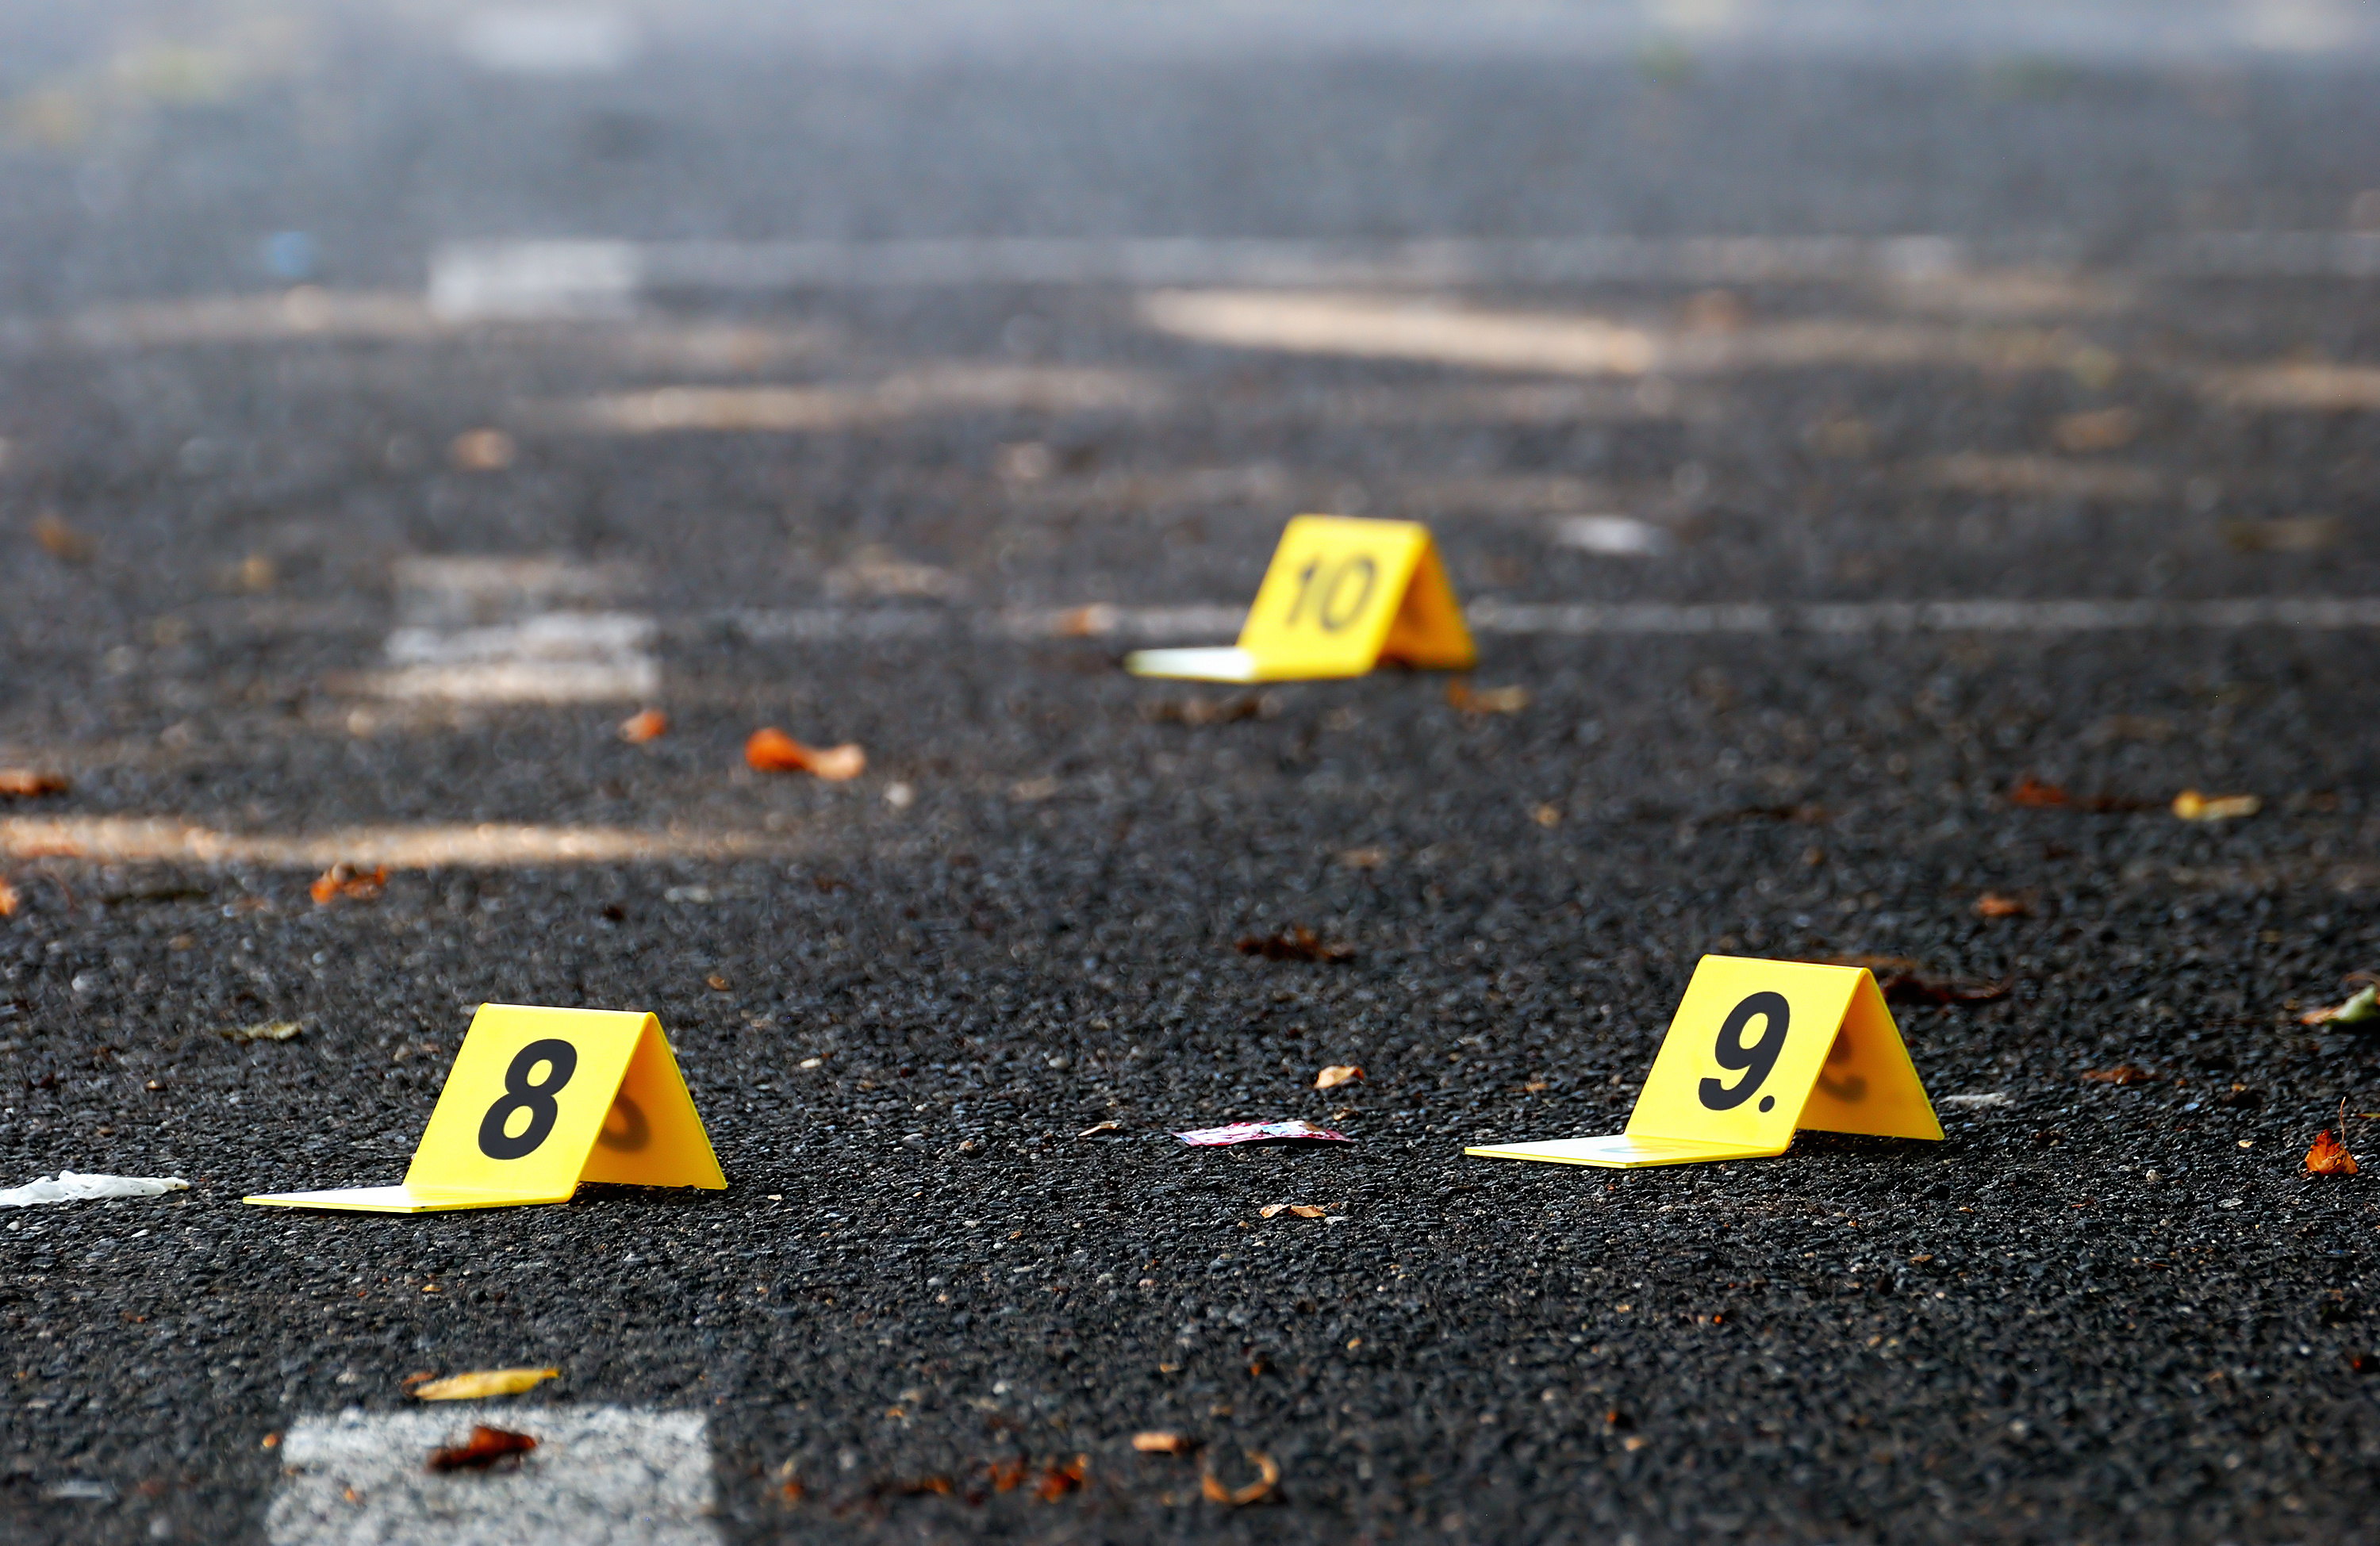 A person was shot to death Sept. 19, 2020, in Lawndale.